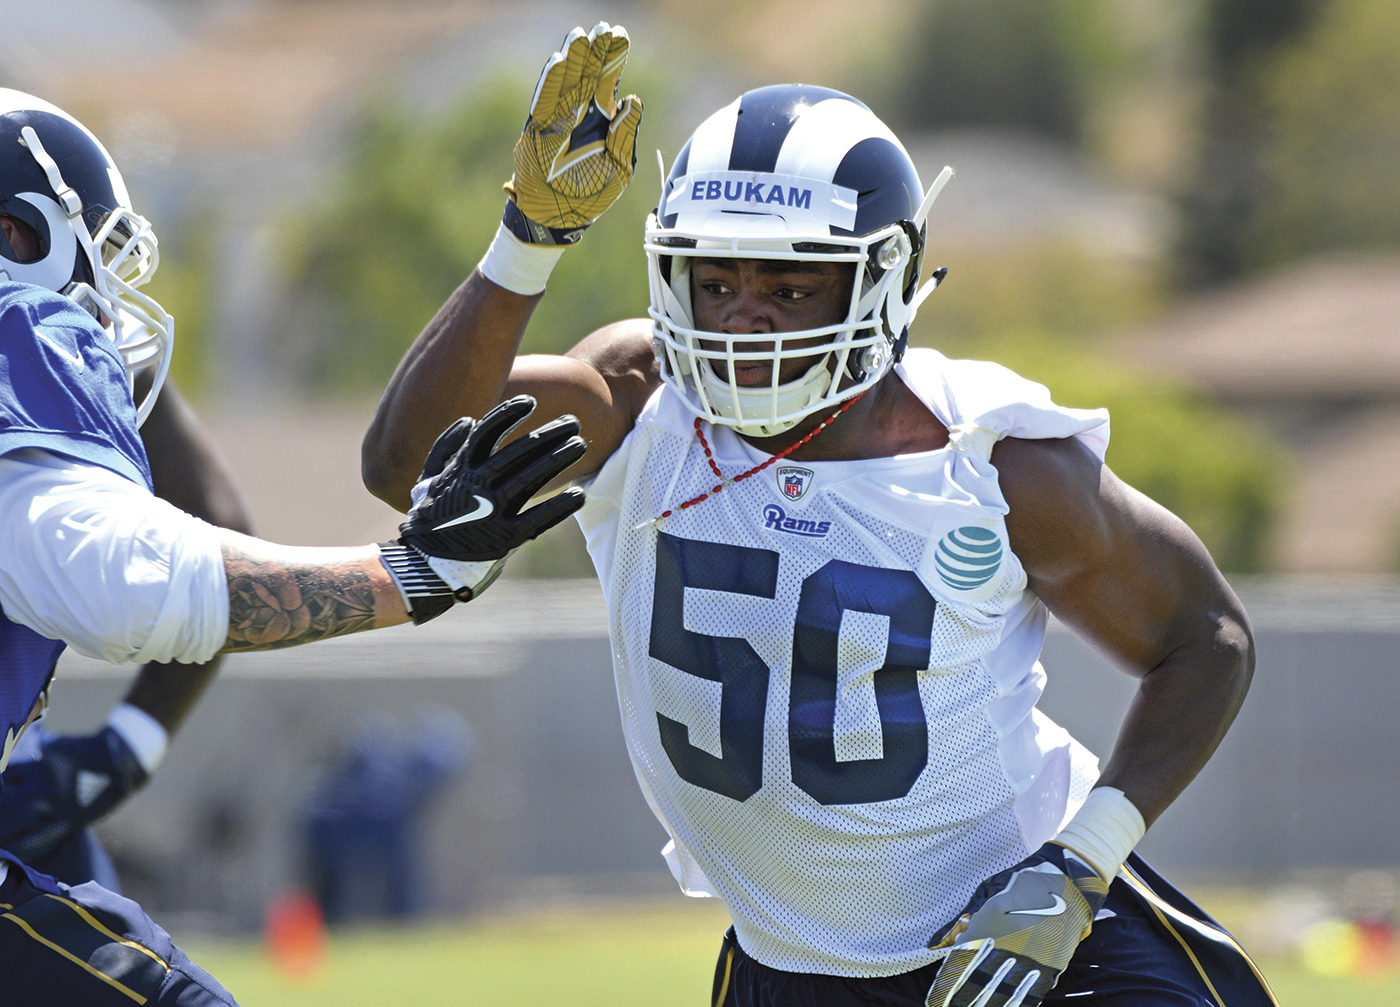 Los Angeles Rams linebacker Samson Ebukam (50) rushes a lineman during NFL football rookie minicamp at the team's practice facility in Thousand Oaks, Calif., Friday, May 12, 2017. (Michael Owen Baker / Associated Press)